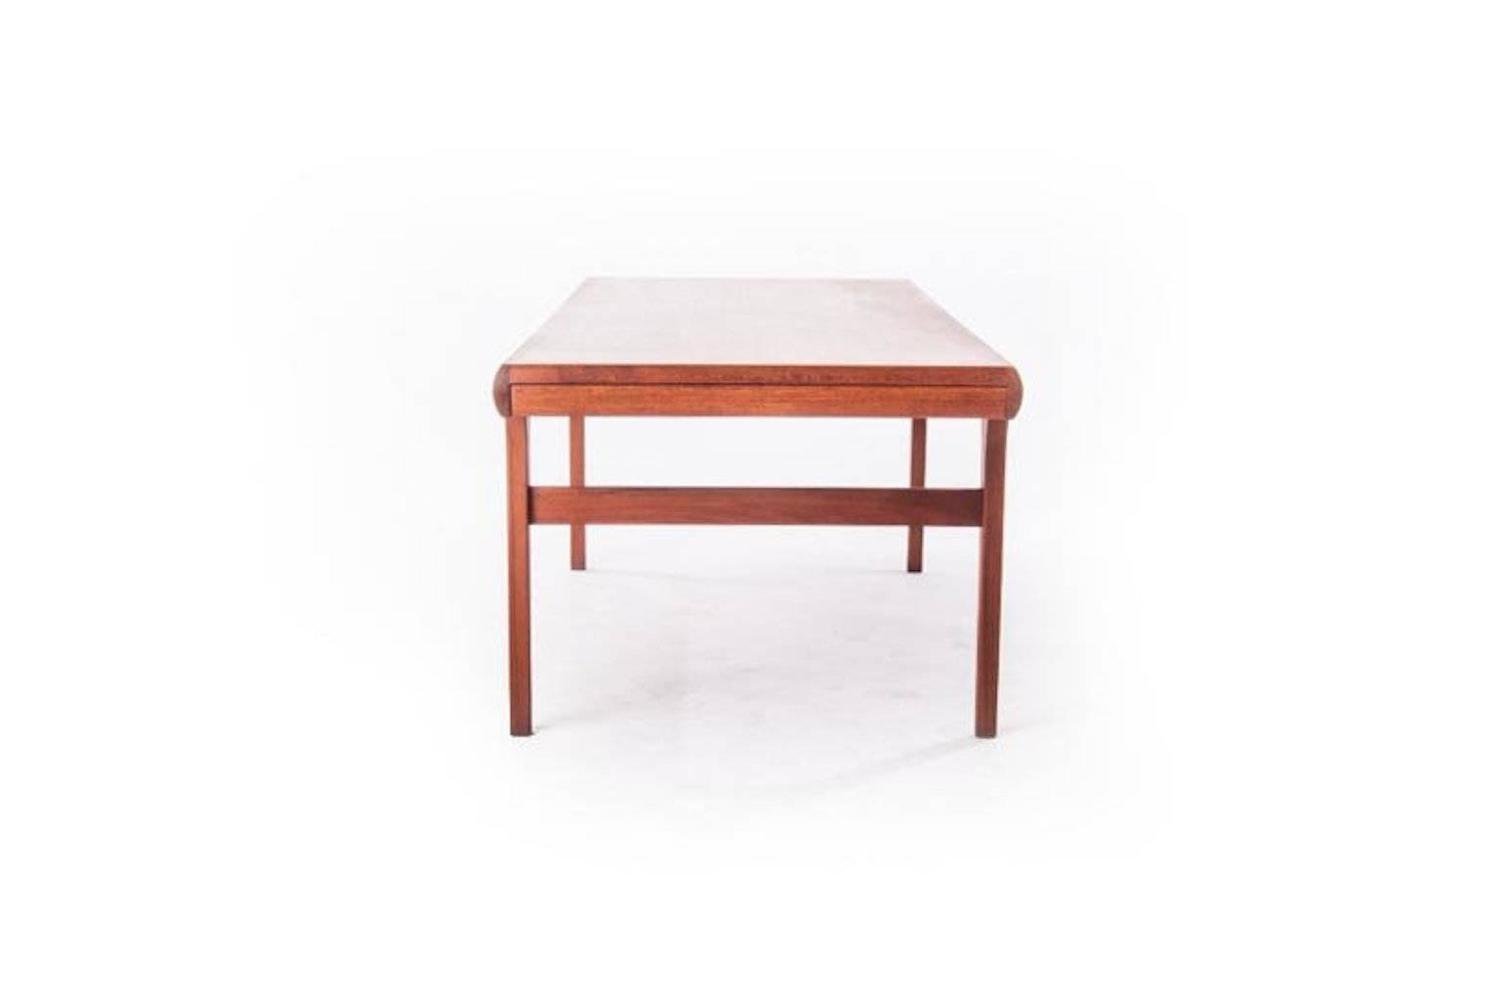 Danish Modern Coffee Table With Retractable Shelves For Sale At 1stdibs